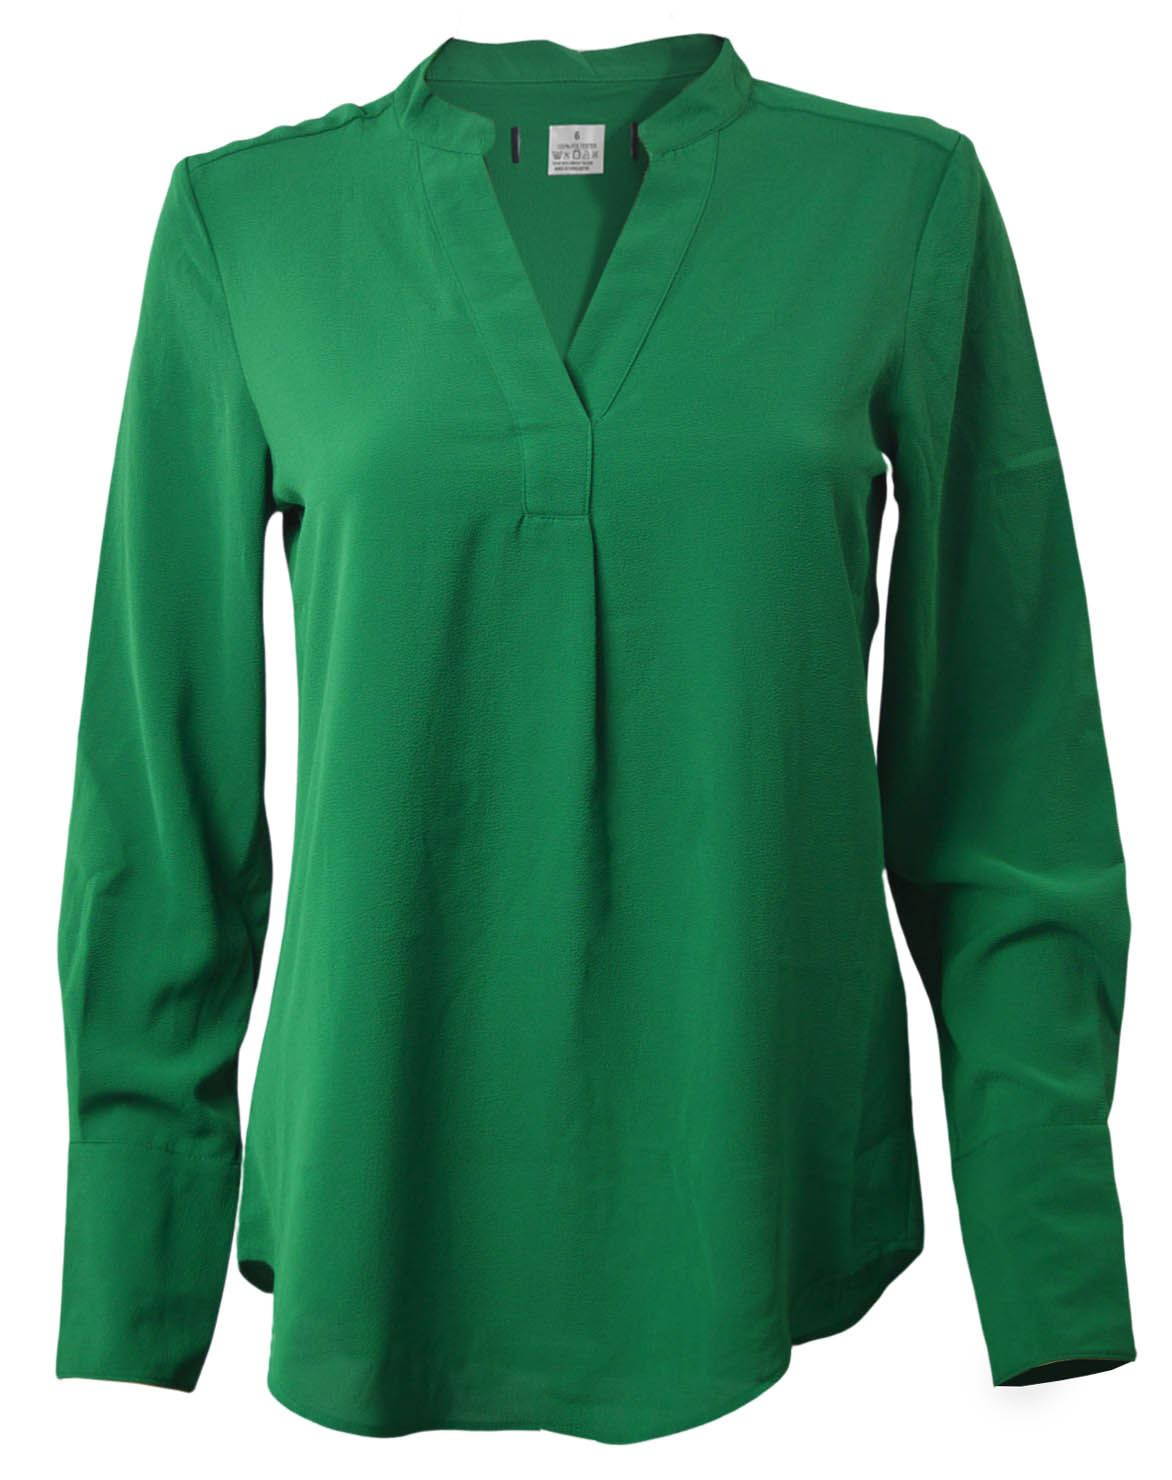 MARKS-amp-SPENCER-Womens-Long-Sleeve-V-Neck-Tunic-Blouse-Size-6-CLEARANCE thumbnail 15